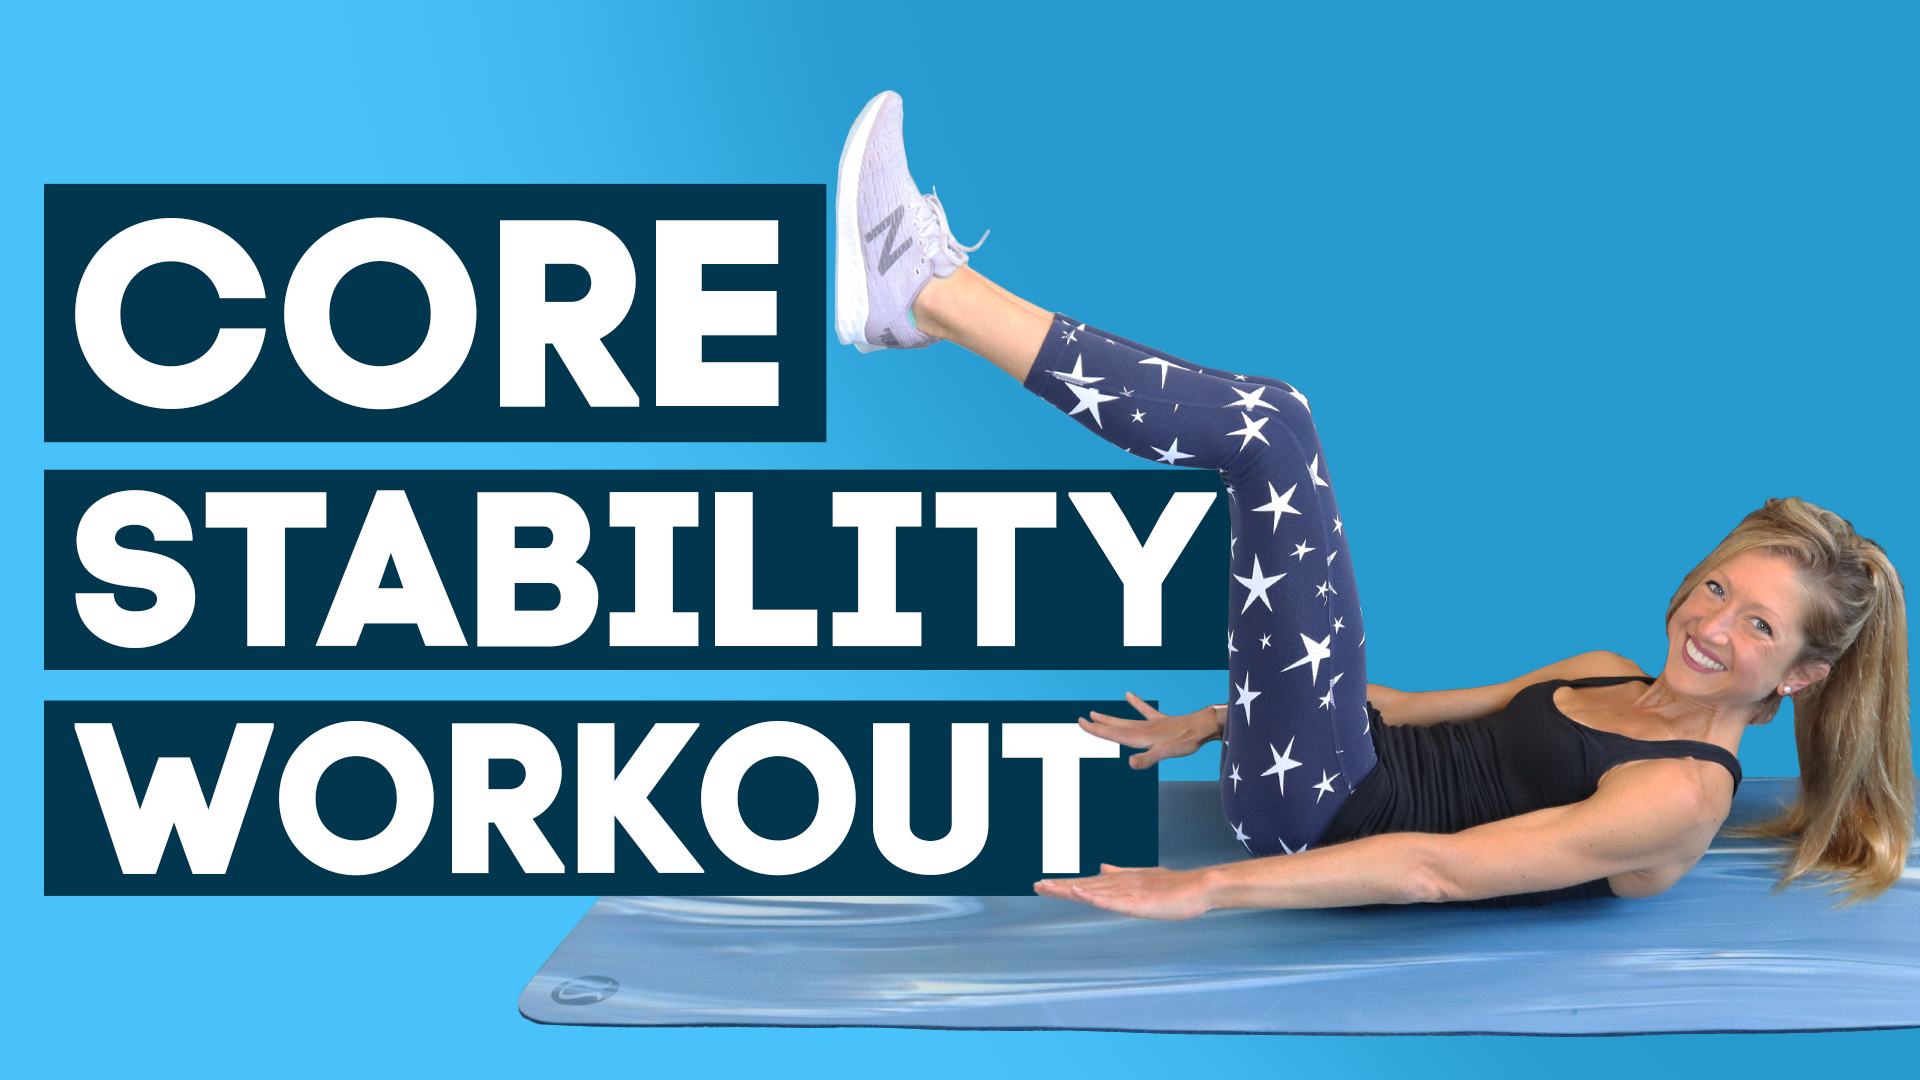 core stability workout